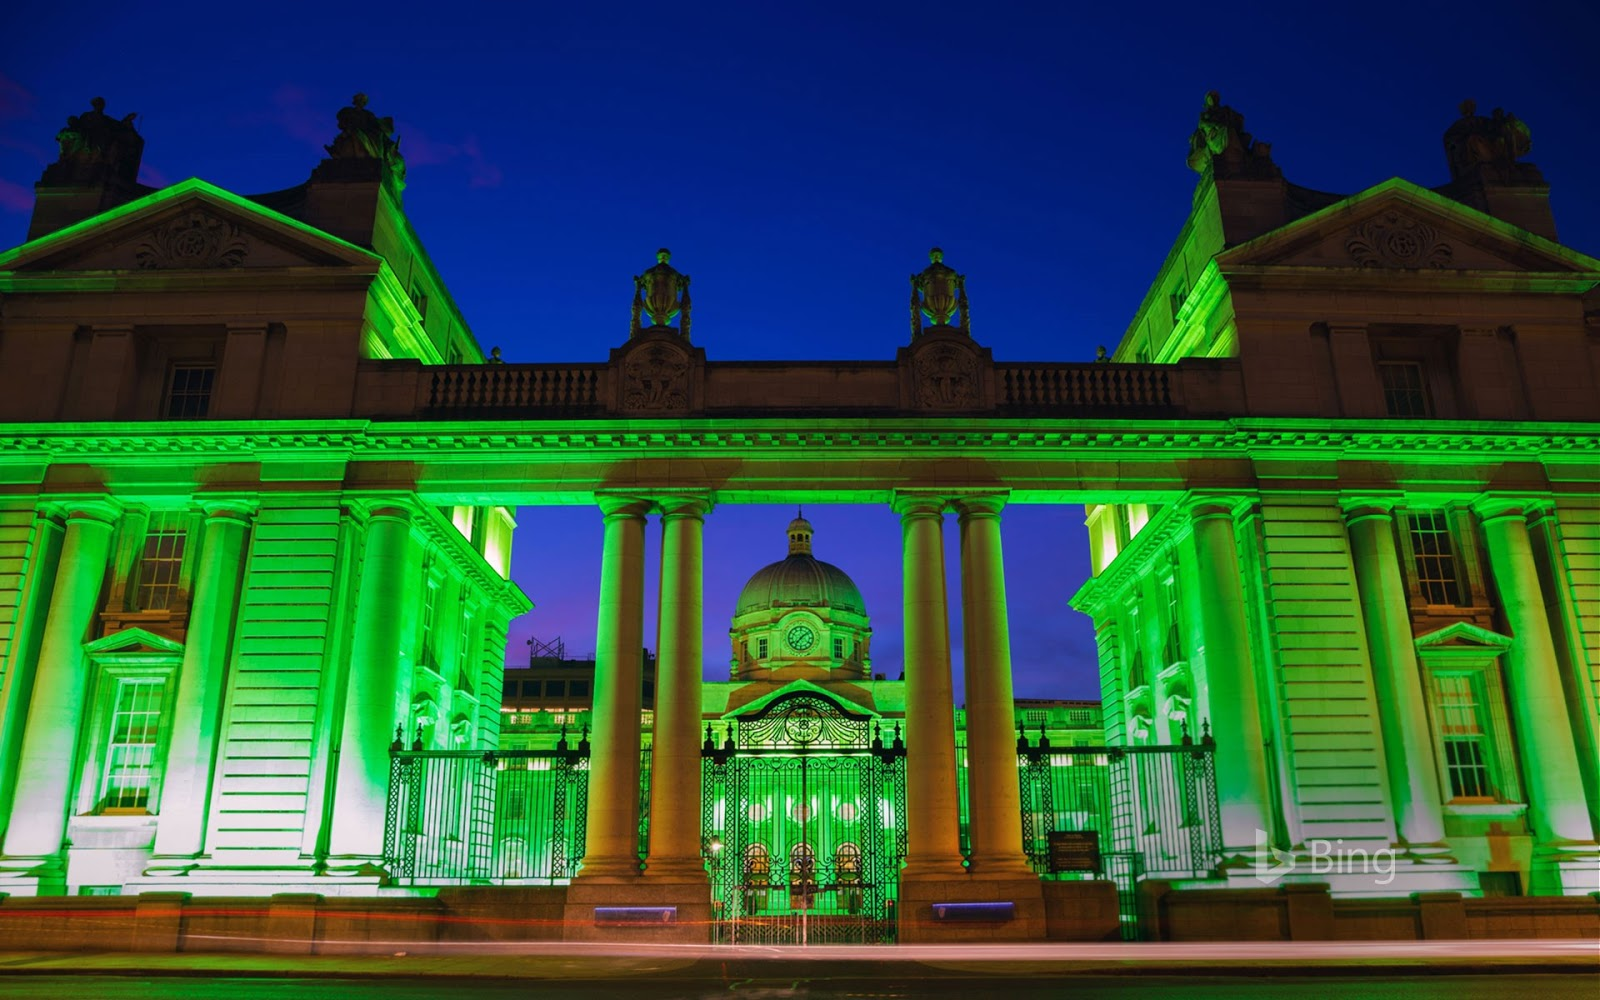 Department of the Taoiseach lit up for the St Patrick's Festival in Dublin, Ireland © David Soanes Photography/Getty Images